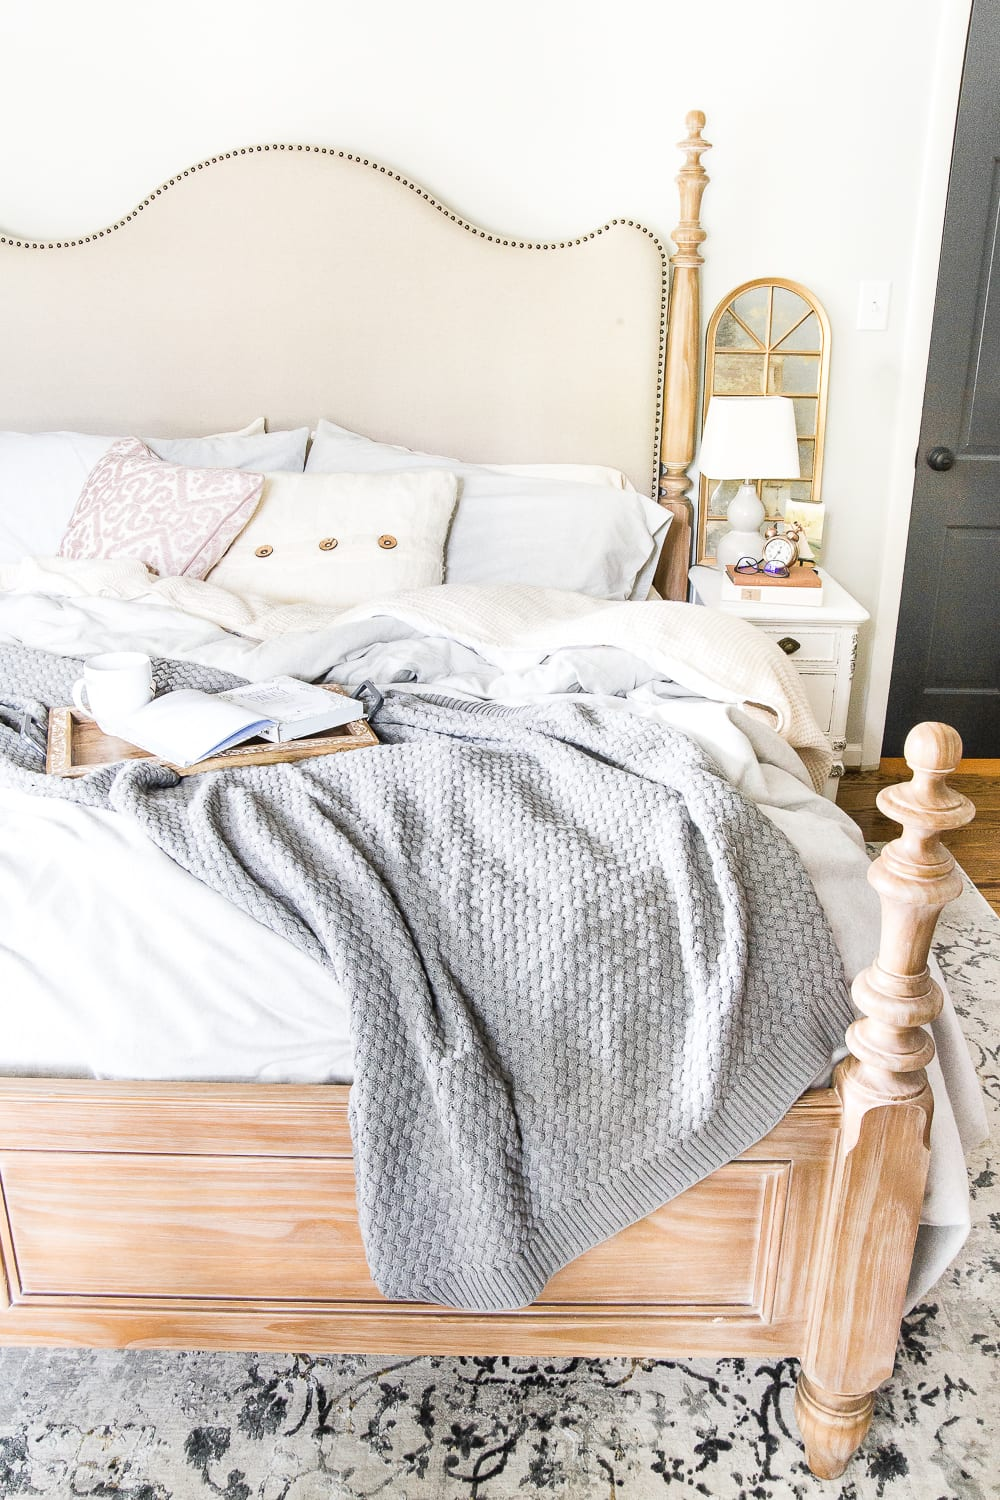 7 Ways I Relieve Anxiety at Bedtime | blesserhouse.com - Tips for relieving stress and anxiety with bedtime rituals, decorating advice, and favorite products that work to help you unwind. #cozyliving #bedroom #anxiety #stressrelief #lifestyle cozy bedding